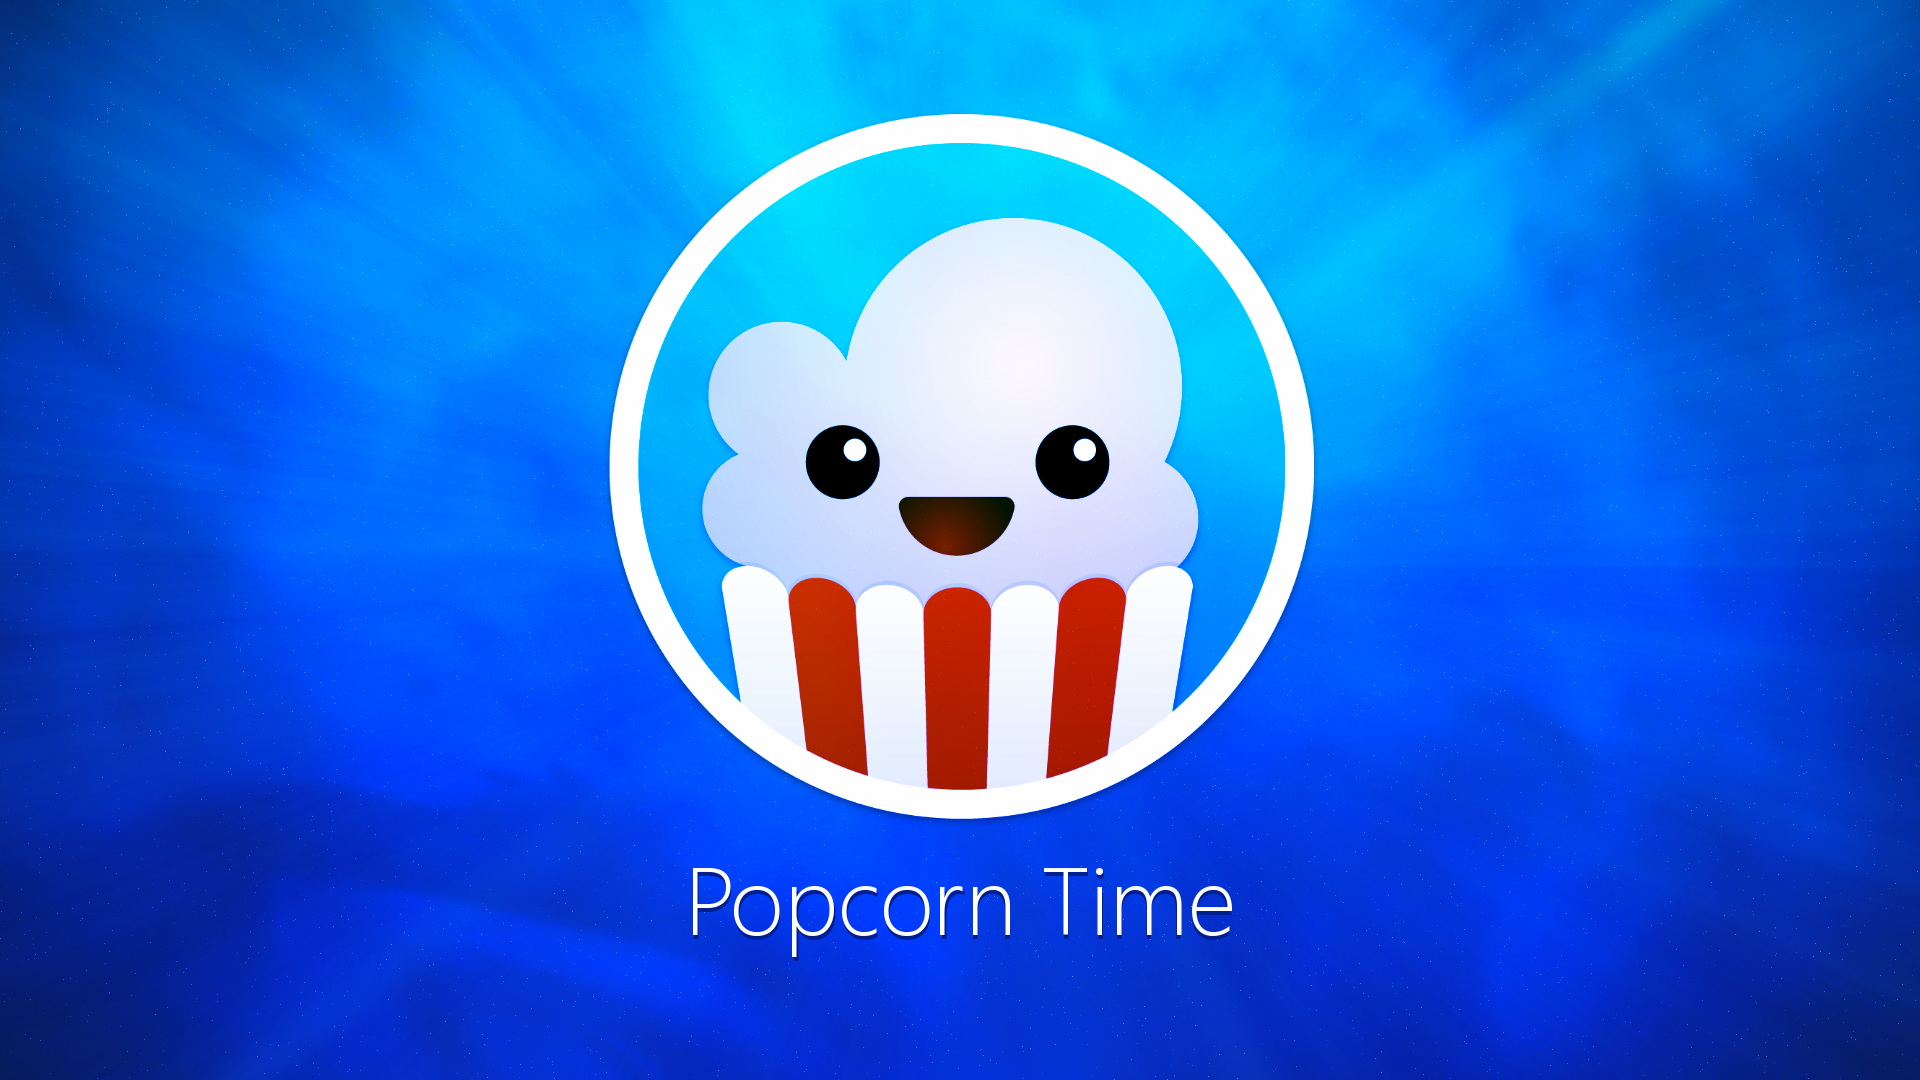 popcorn_time_wallpaper____blue_space__by_chrisfr06-d8g5x2a